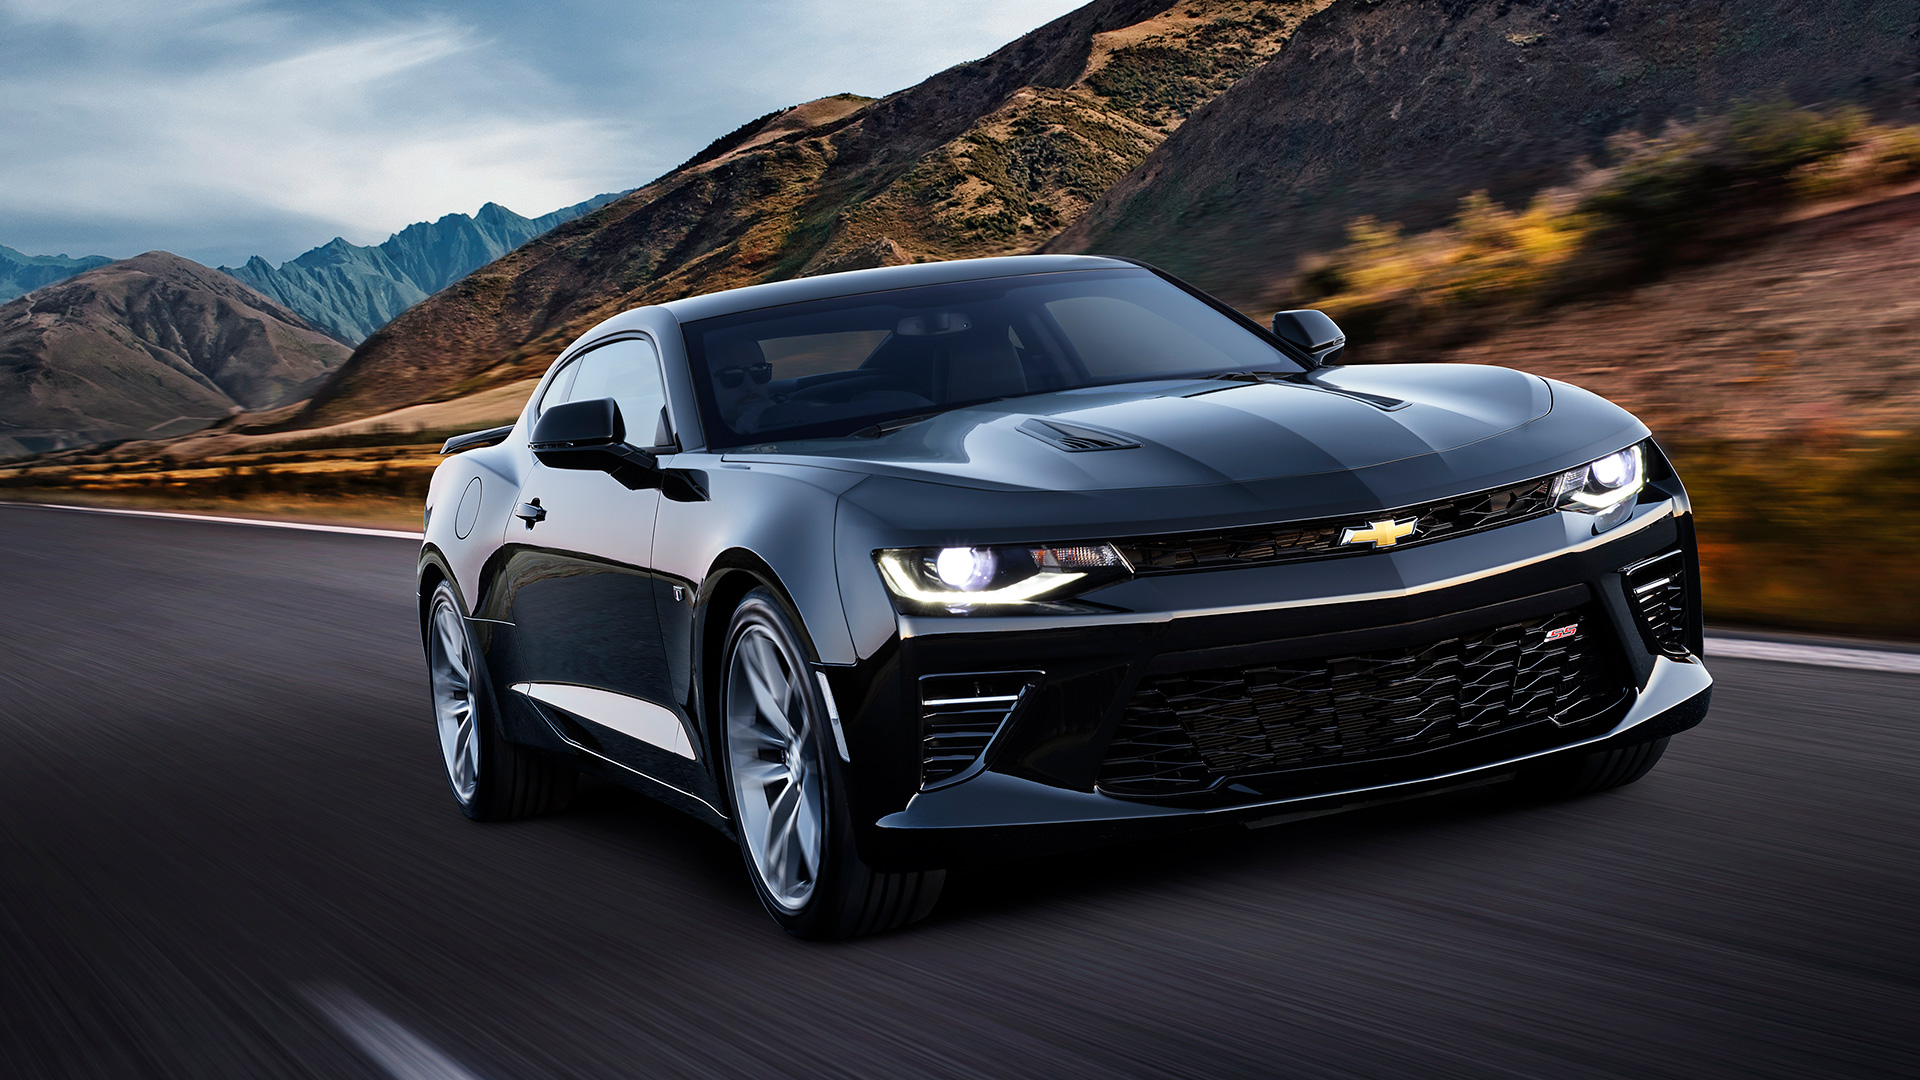 HSV today confirmed pricing for its exciting new Chevrolet Camaro 2SS.